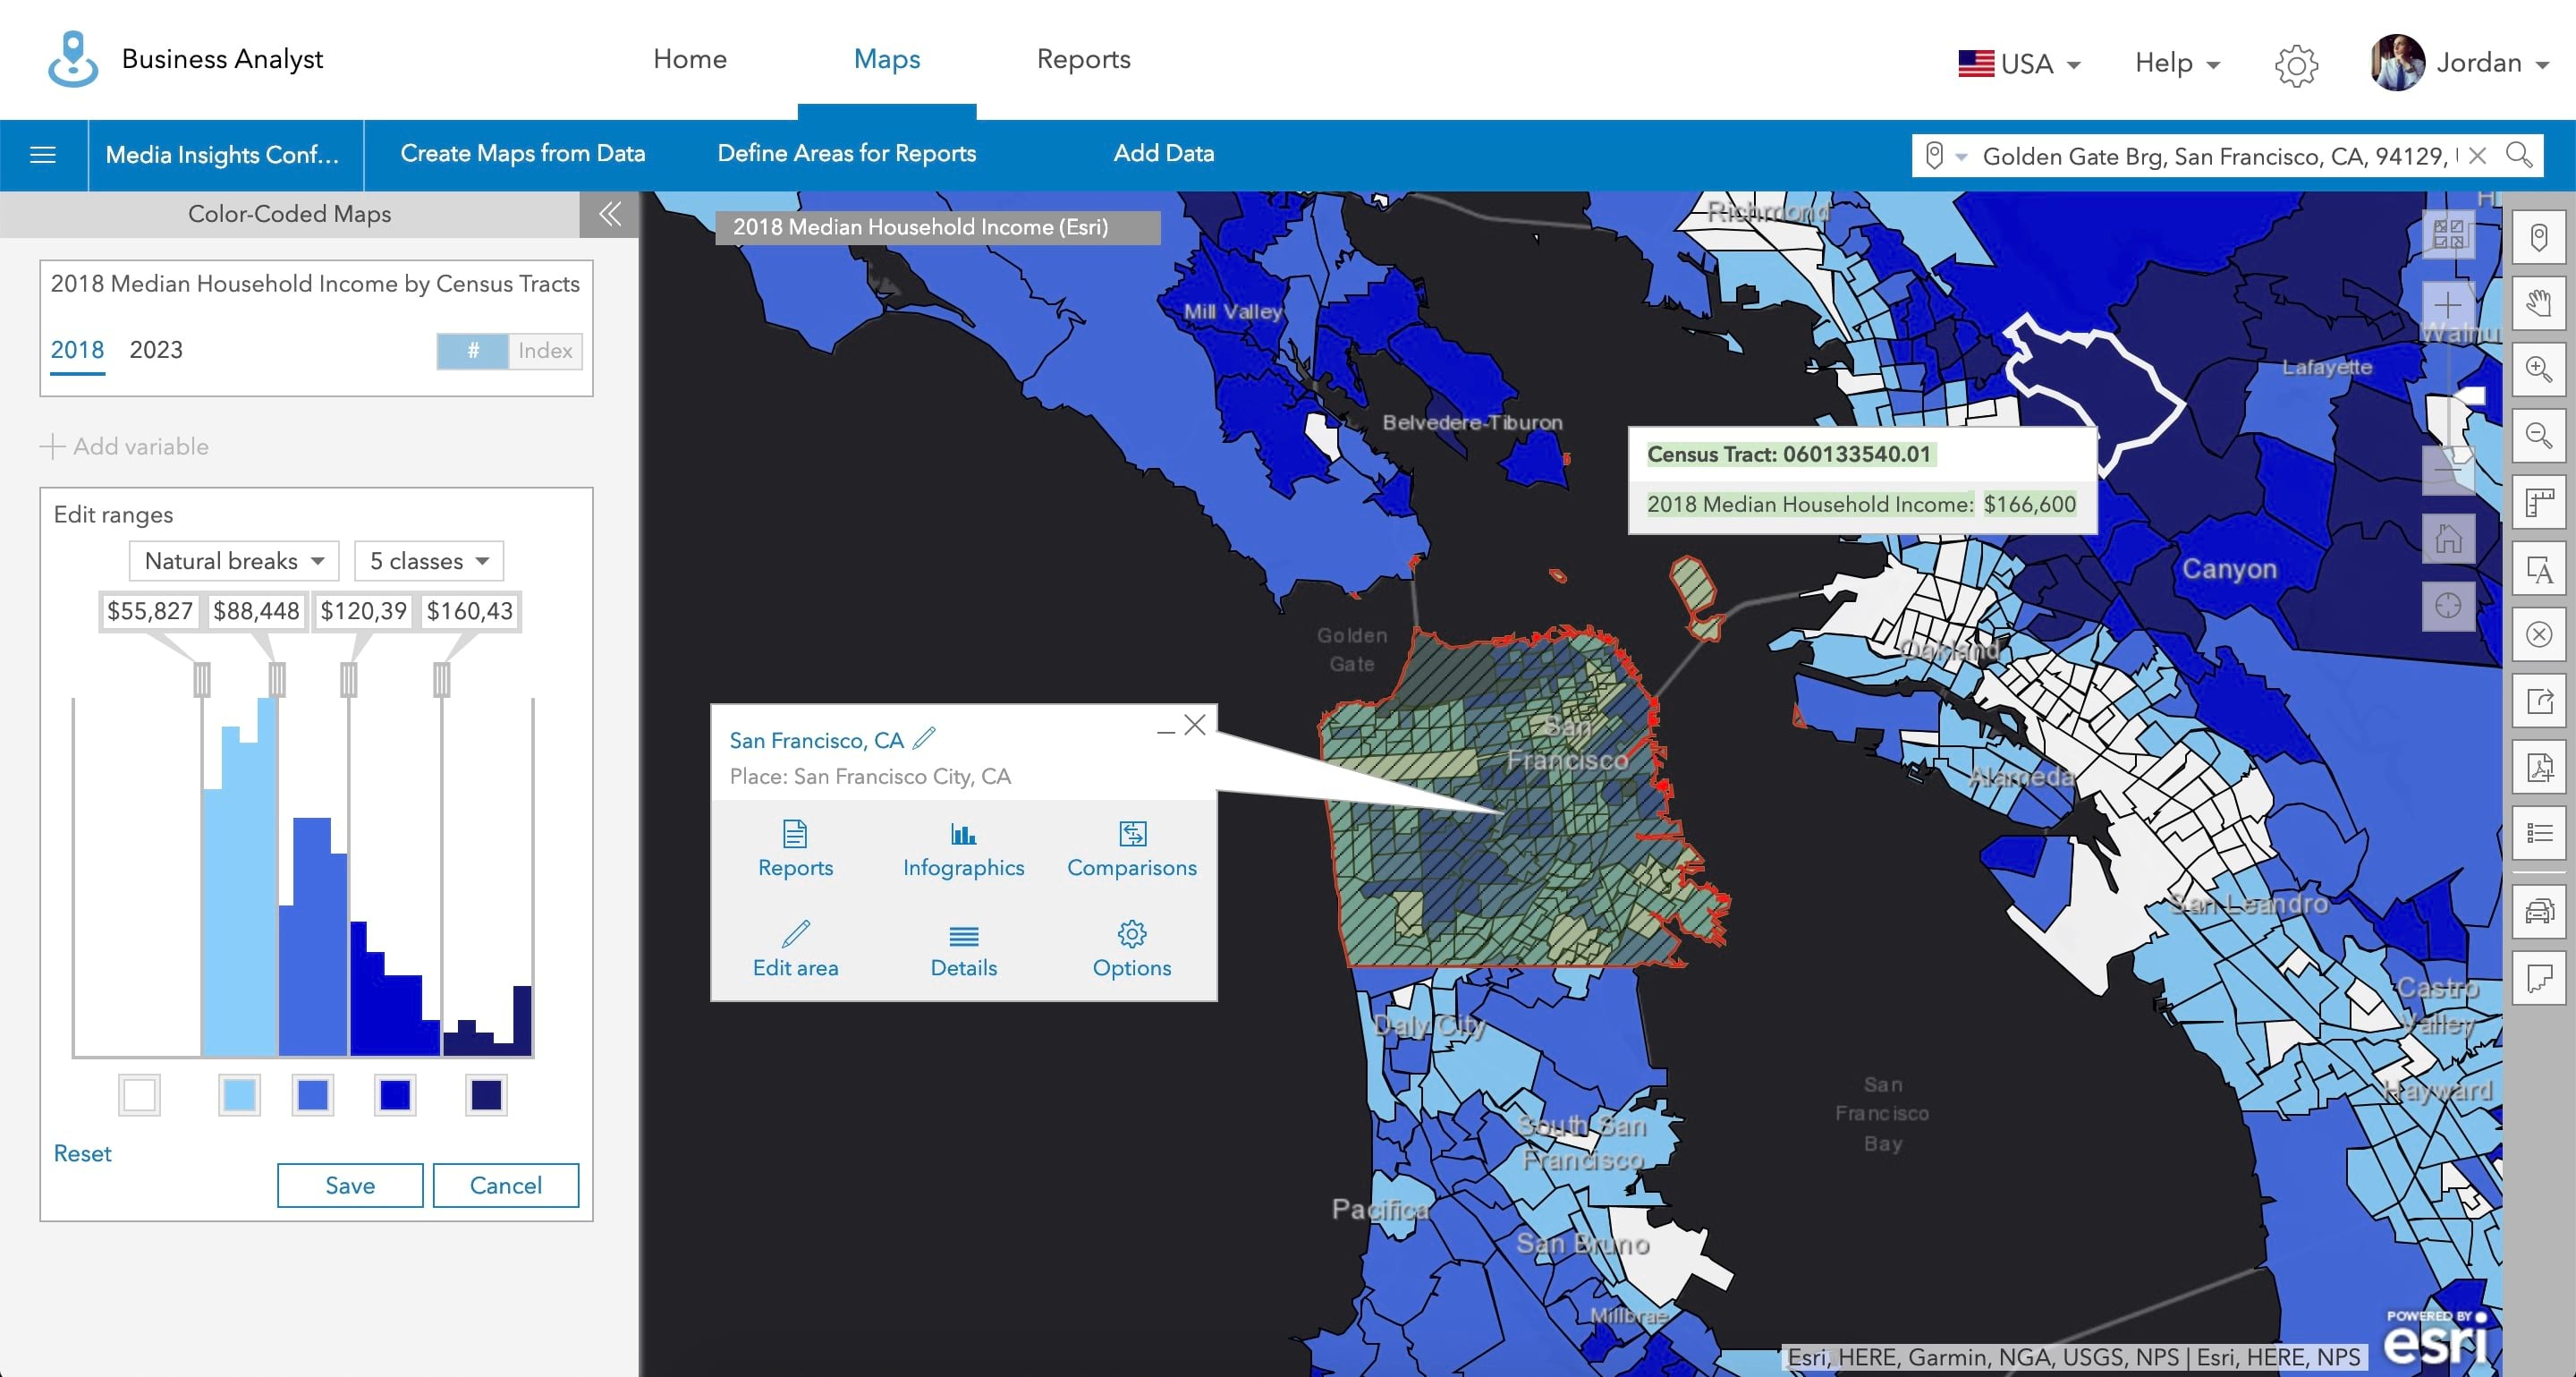 Color-coded map of the San Francisco area using the Business Analyst Web App.